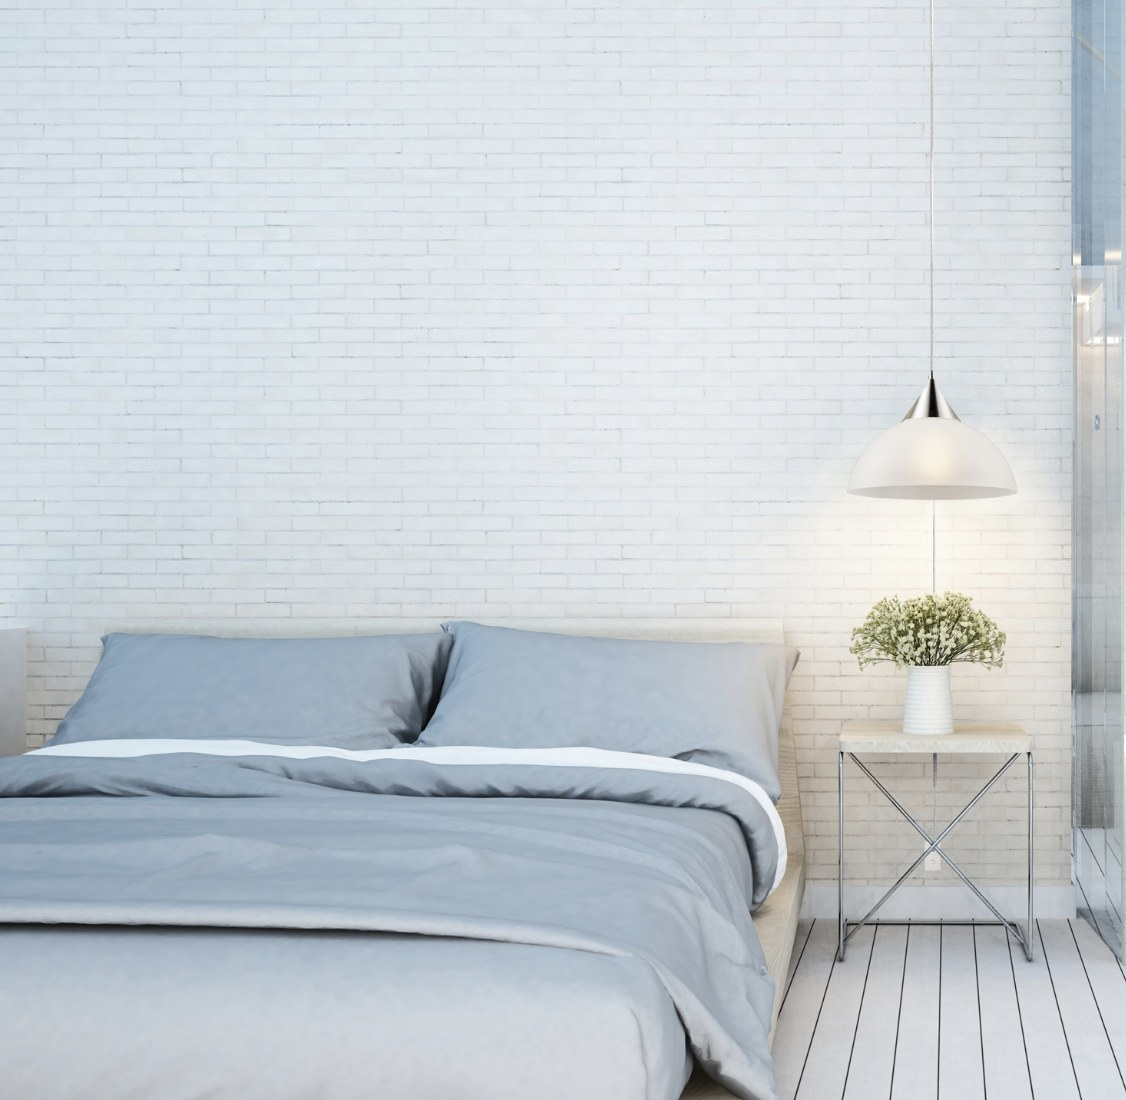 The white dome light has silver accents is next to a white brick wall and blue bedding